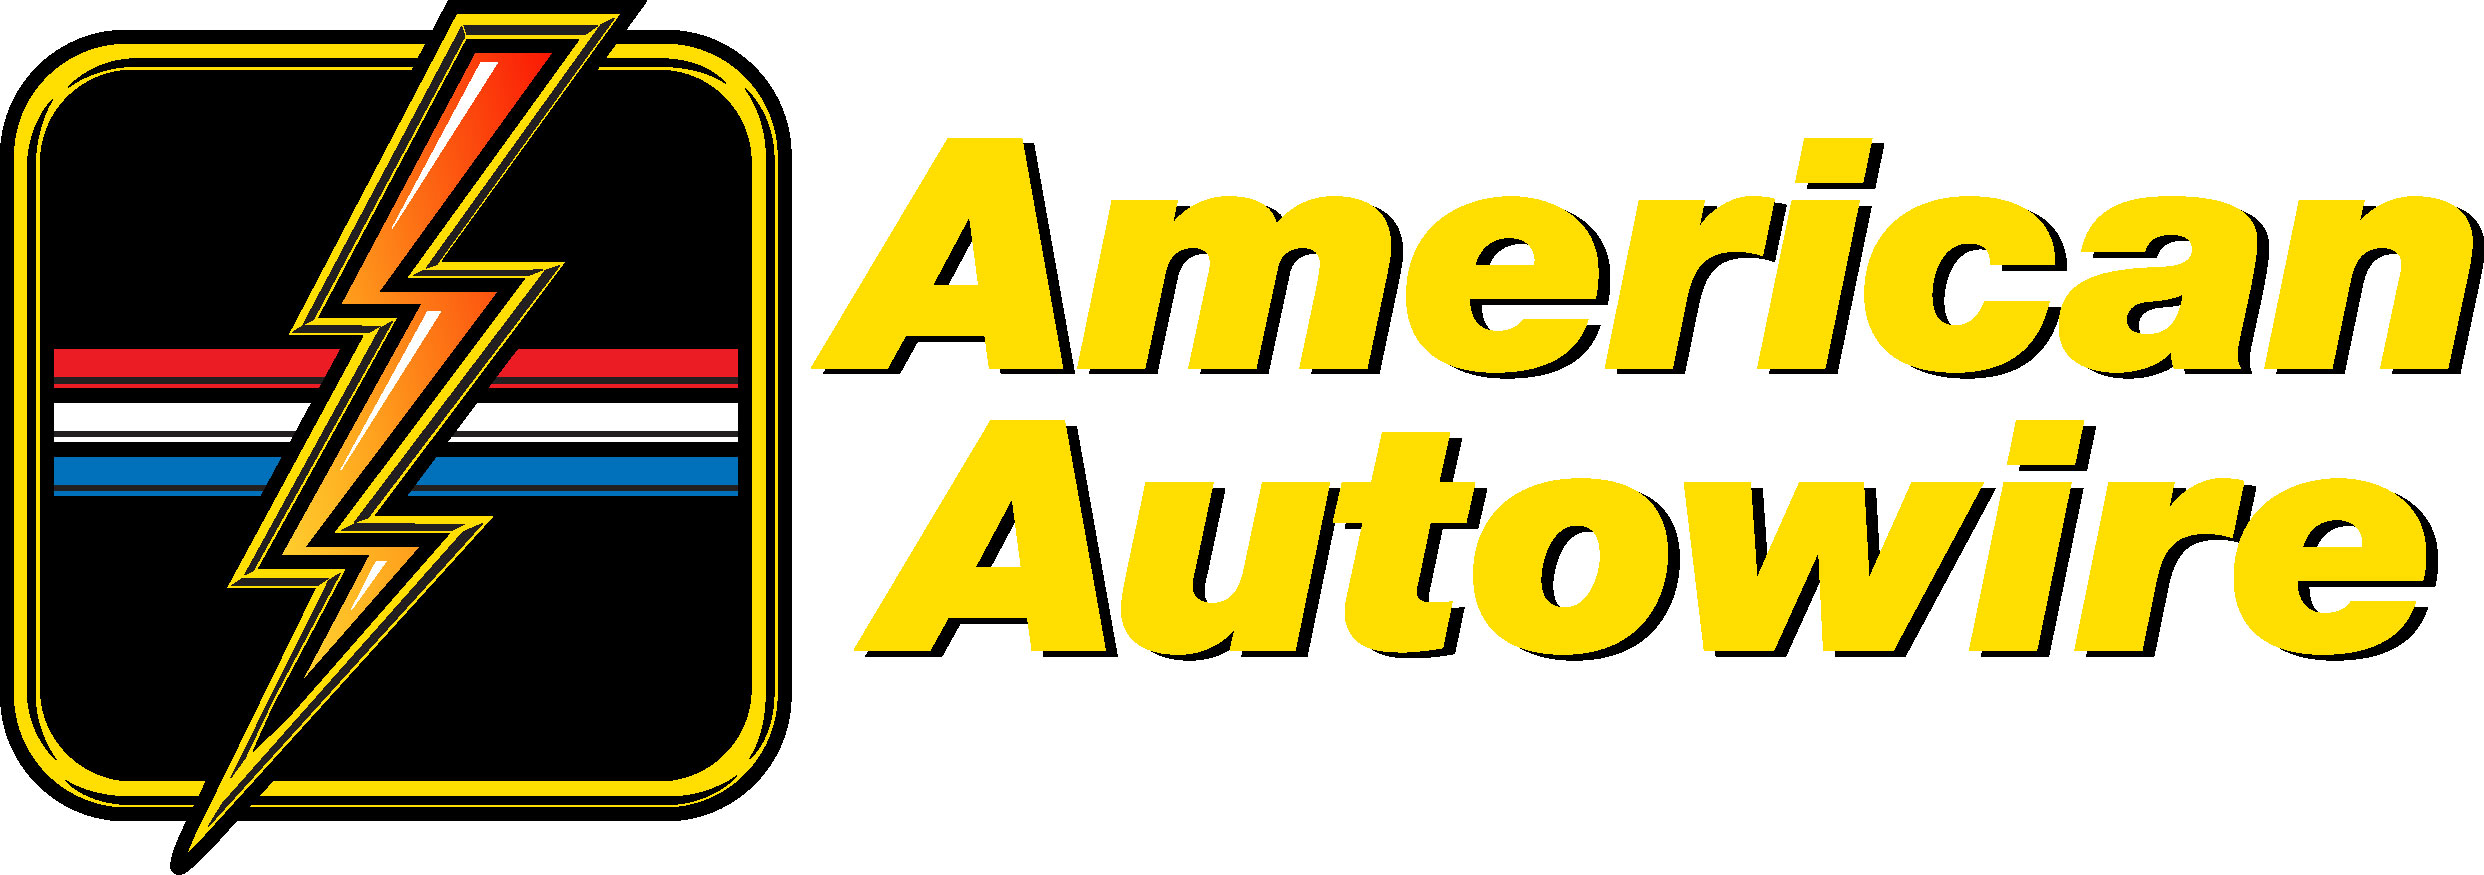 1962 74 Volkswagen Beetle American Autowire Wiring Harness Ebay Backup Lights As The Owner Of A Classic You Know Adding Amenities Is Very Limited With Oe Pst Has Paired To Provide Their